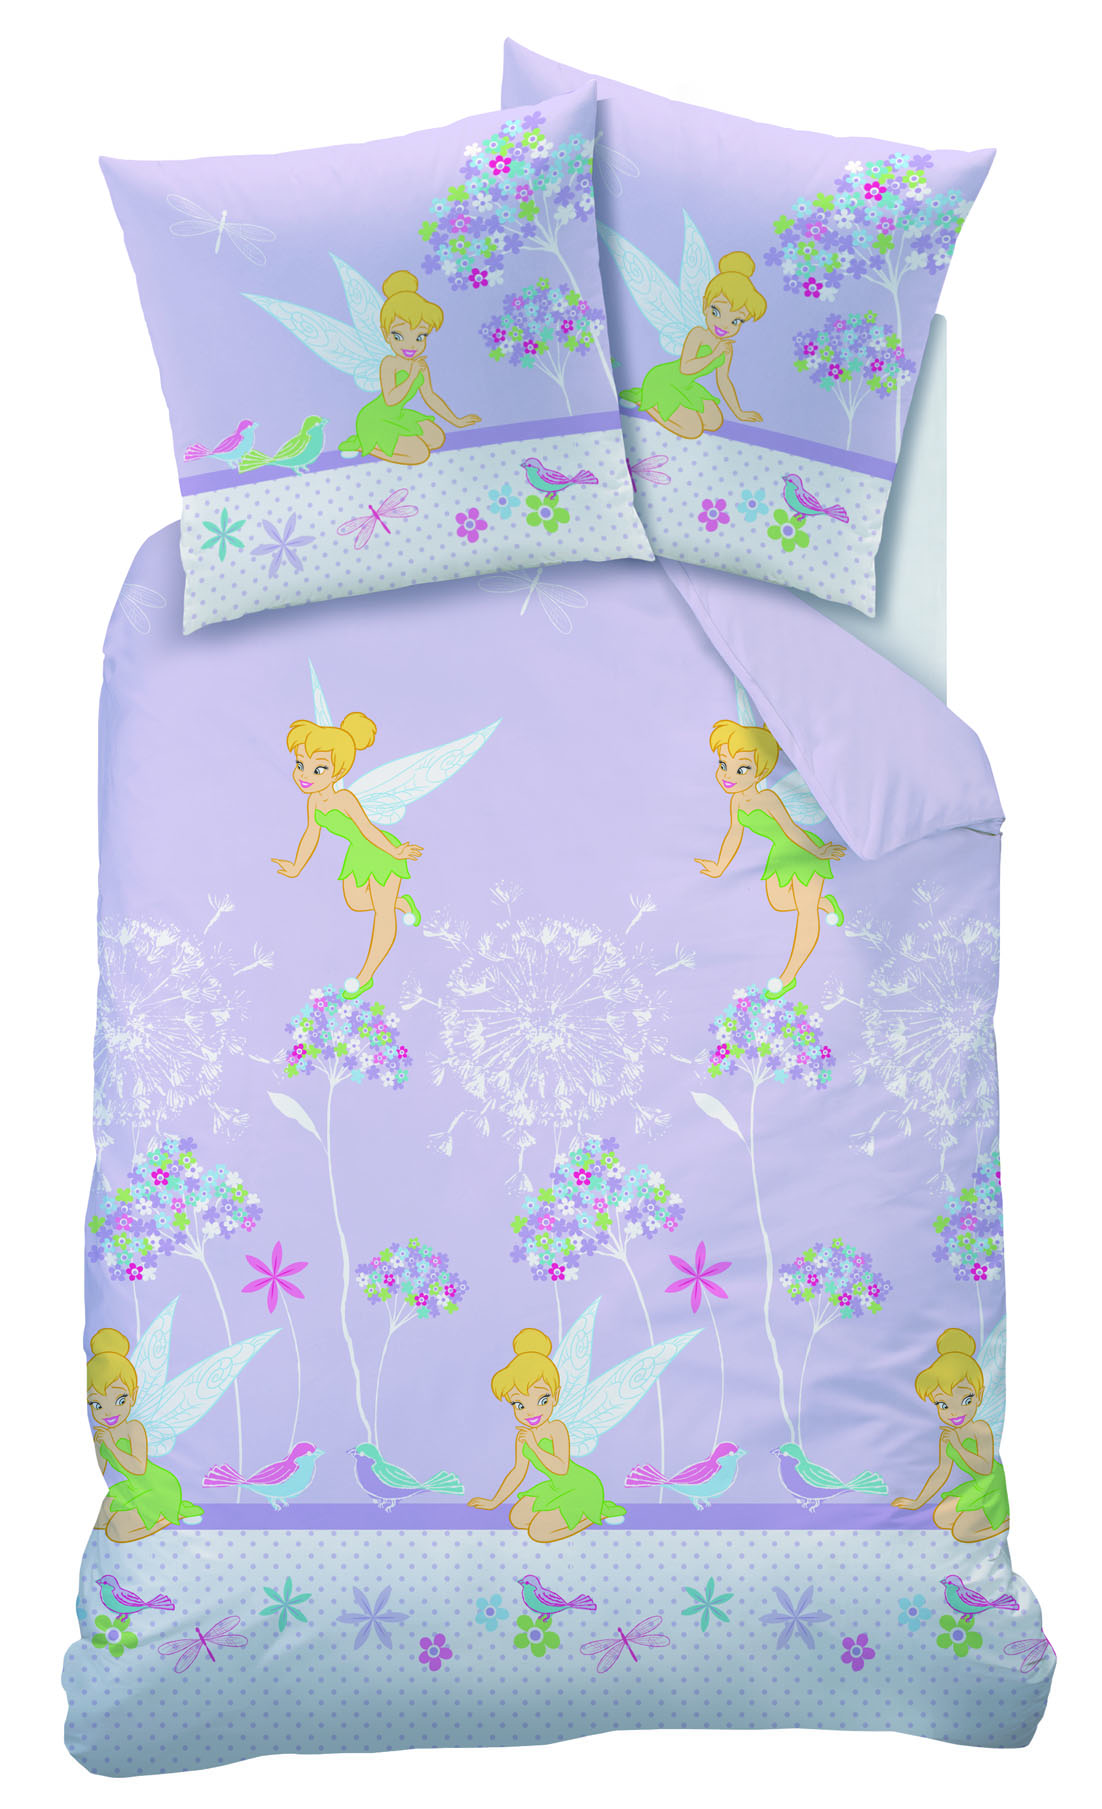 disney fairies housse de couette f e clochette parure de lit enfant floralies. Black Bedroom Furniture Sets. Home Design Ideas